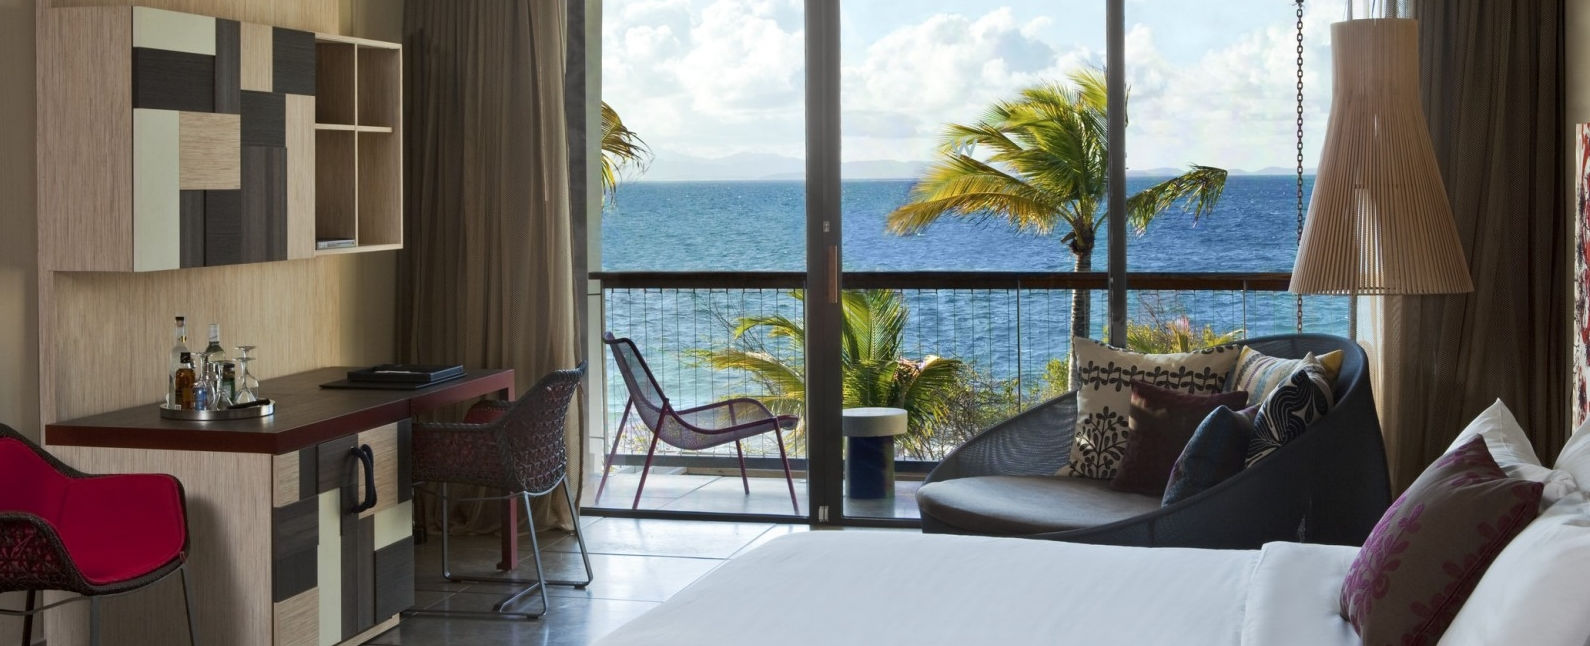 W Retreat & Spa, Vieques Island - Exterior